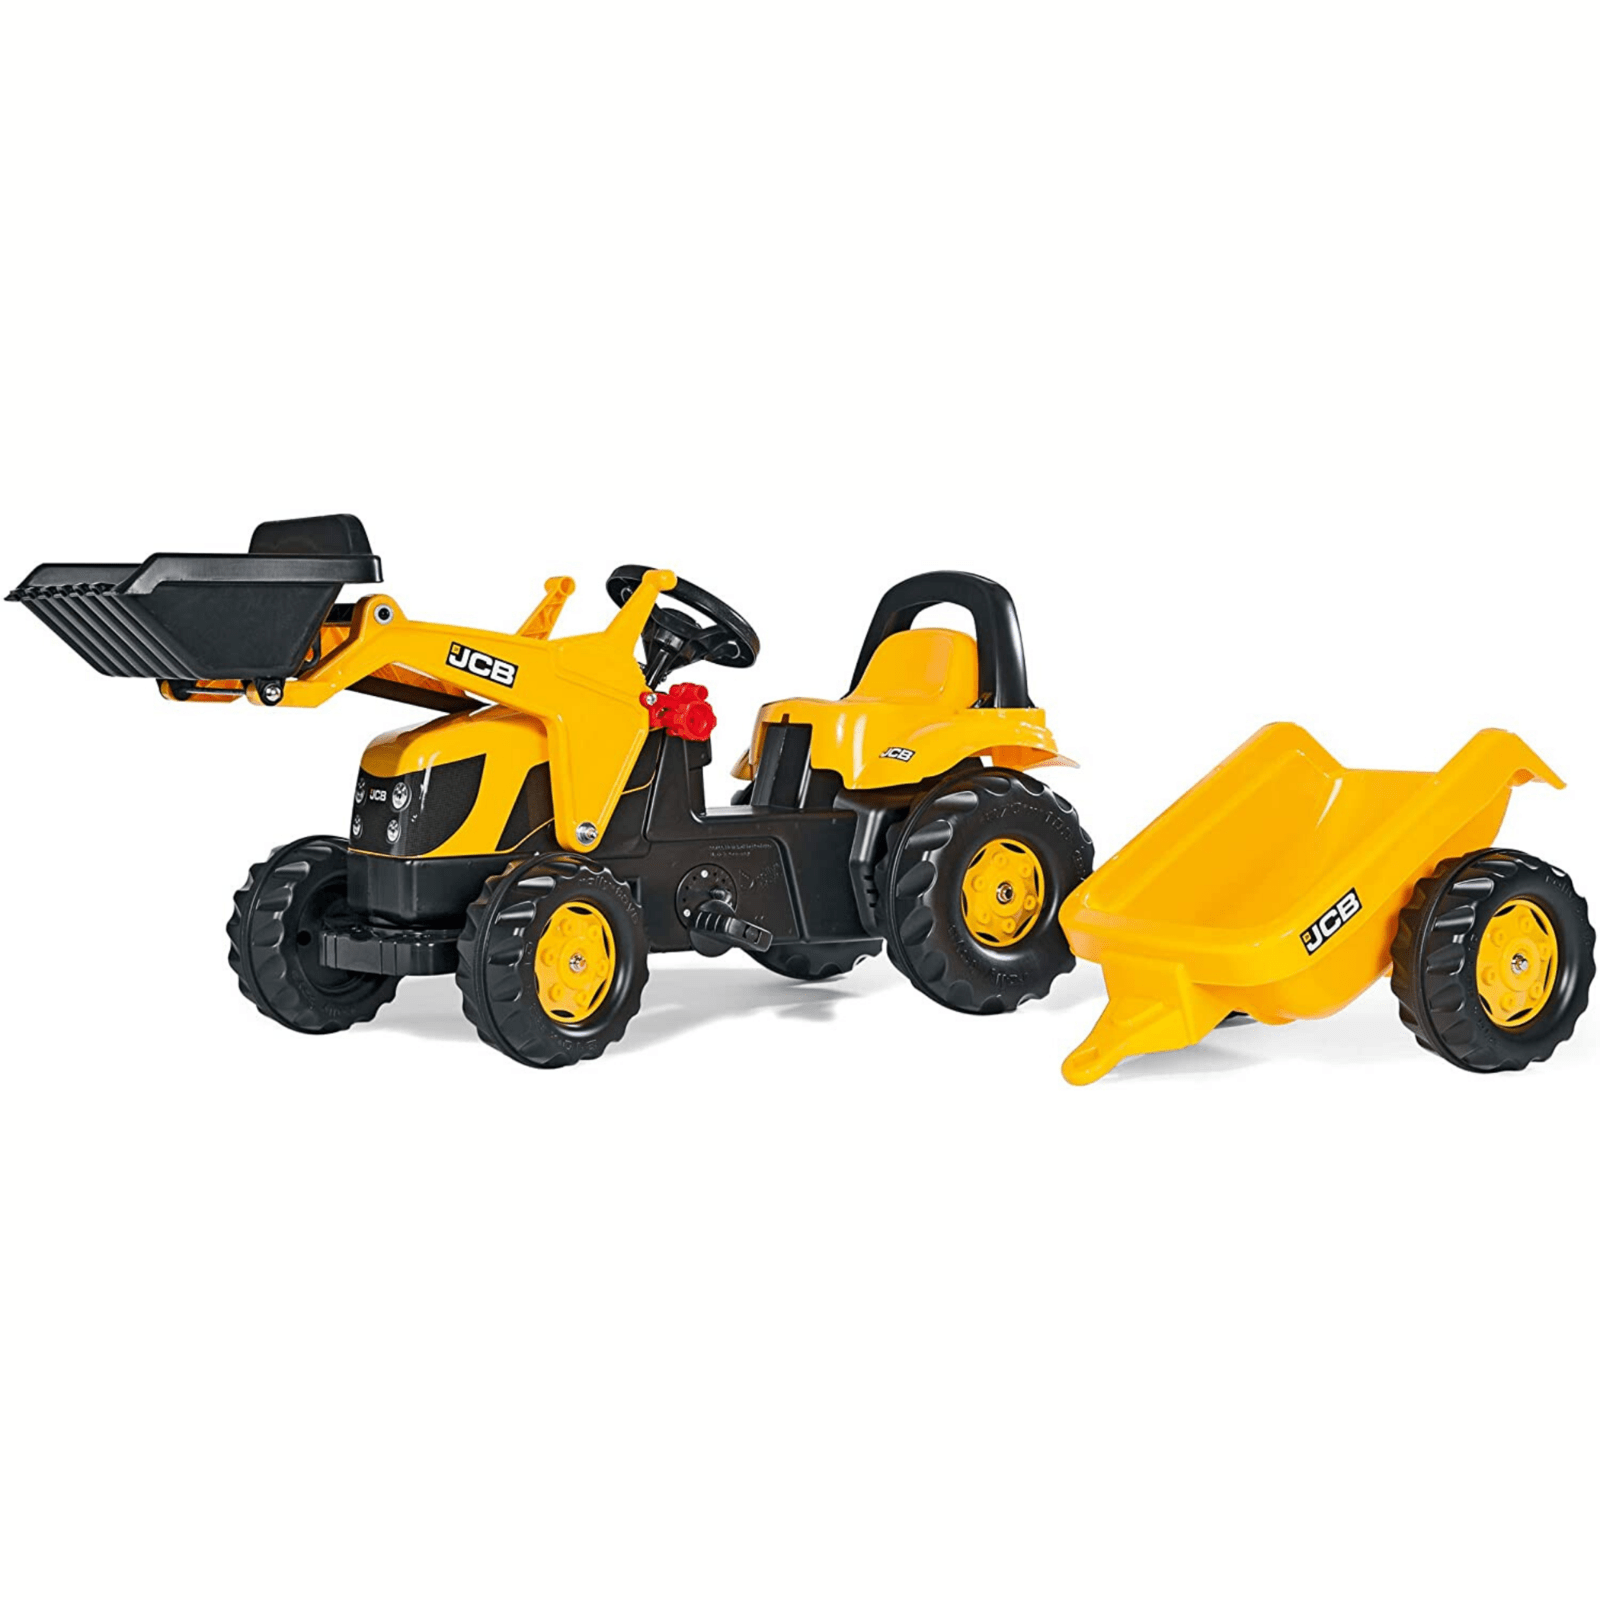 JCB-Pedal-Tractor-with-Frontloader-_-Trailer_1_1600x